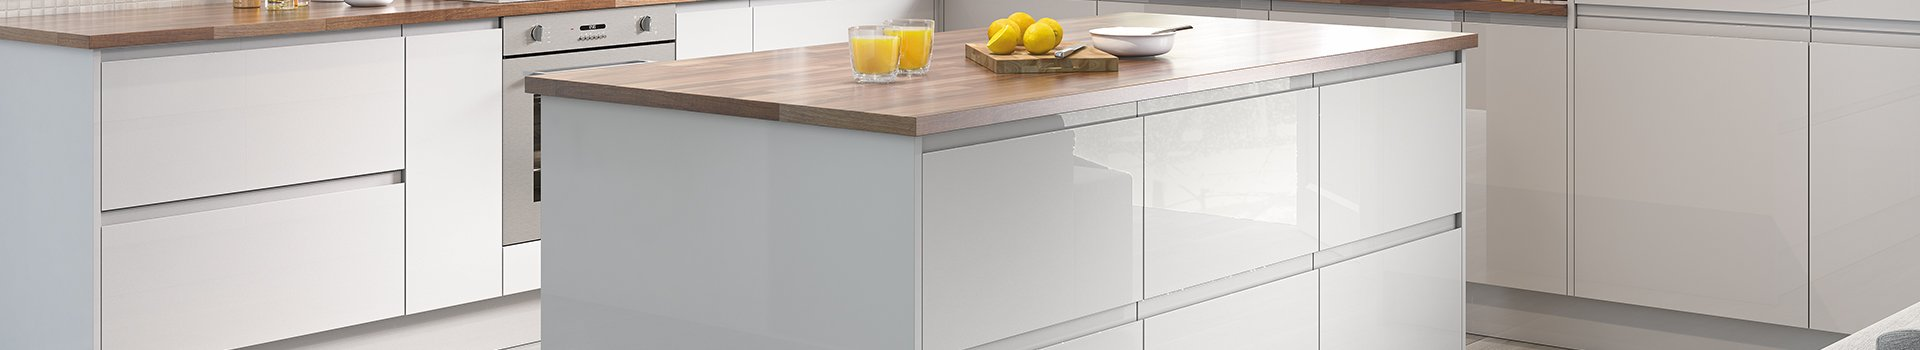 Homebase Kitchens - Guarantees and Accredited Installers